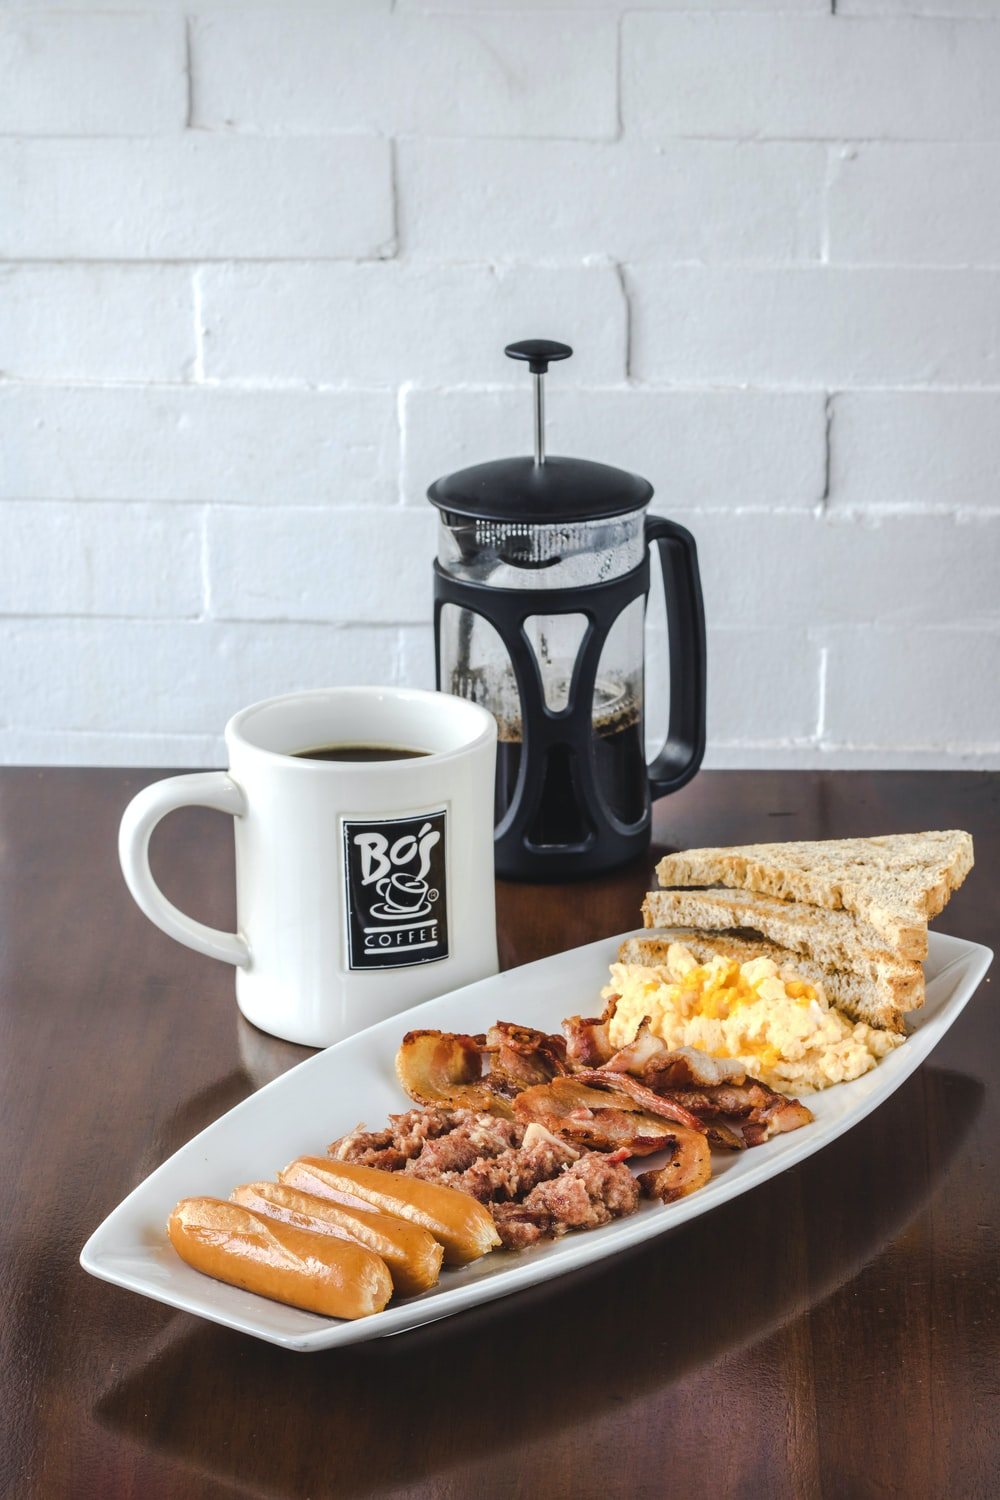 bread and bacon platter beside French press